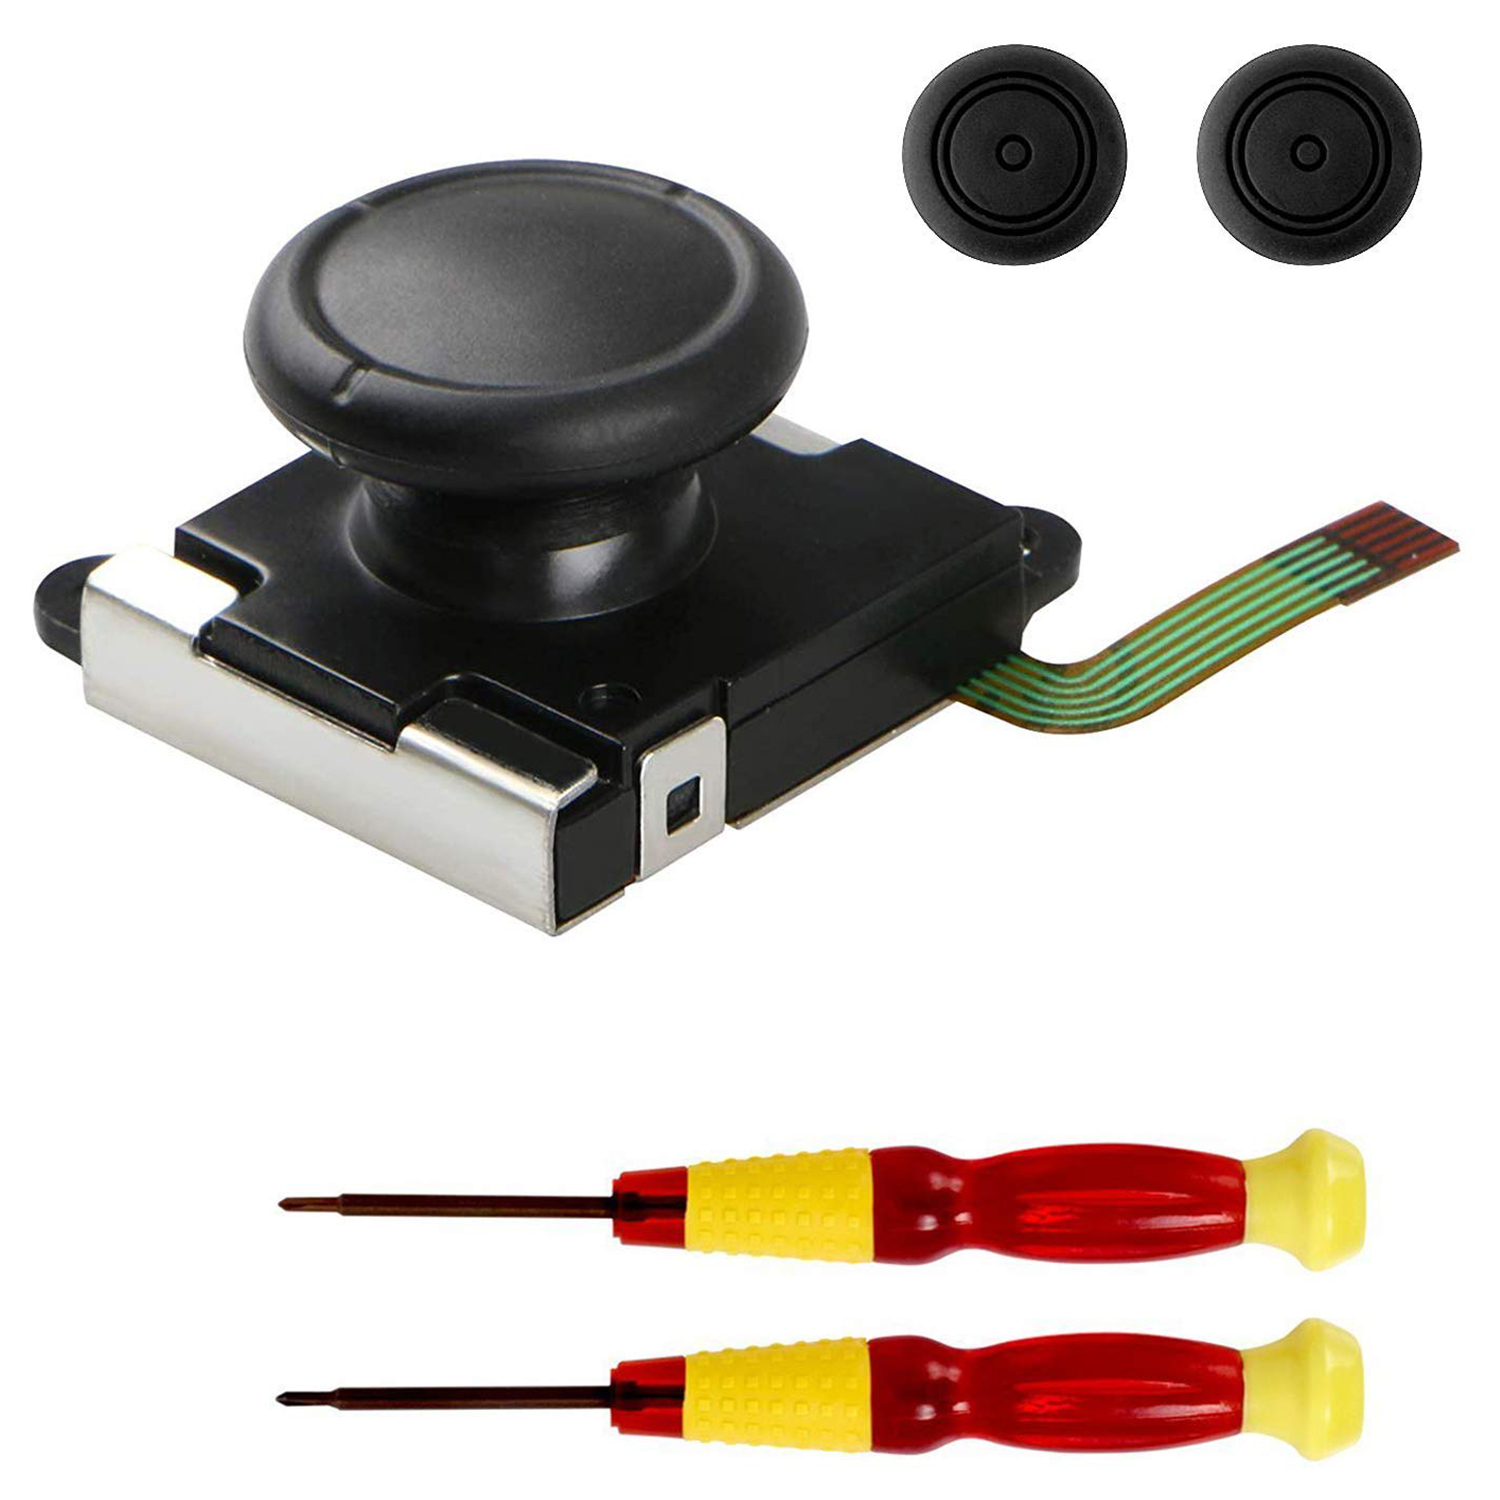 3D Replacement Joystick Analog Thumb Stick For Nintendo Switch Joy-Con Controller - Include Tri-Wing & Cross Screwdriver Tool